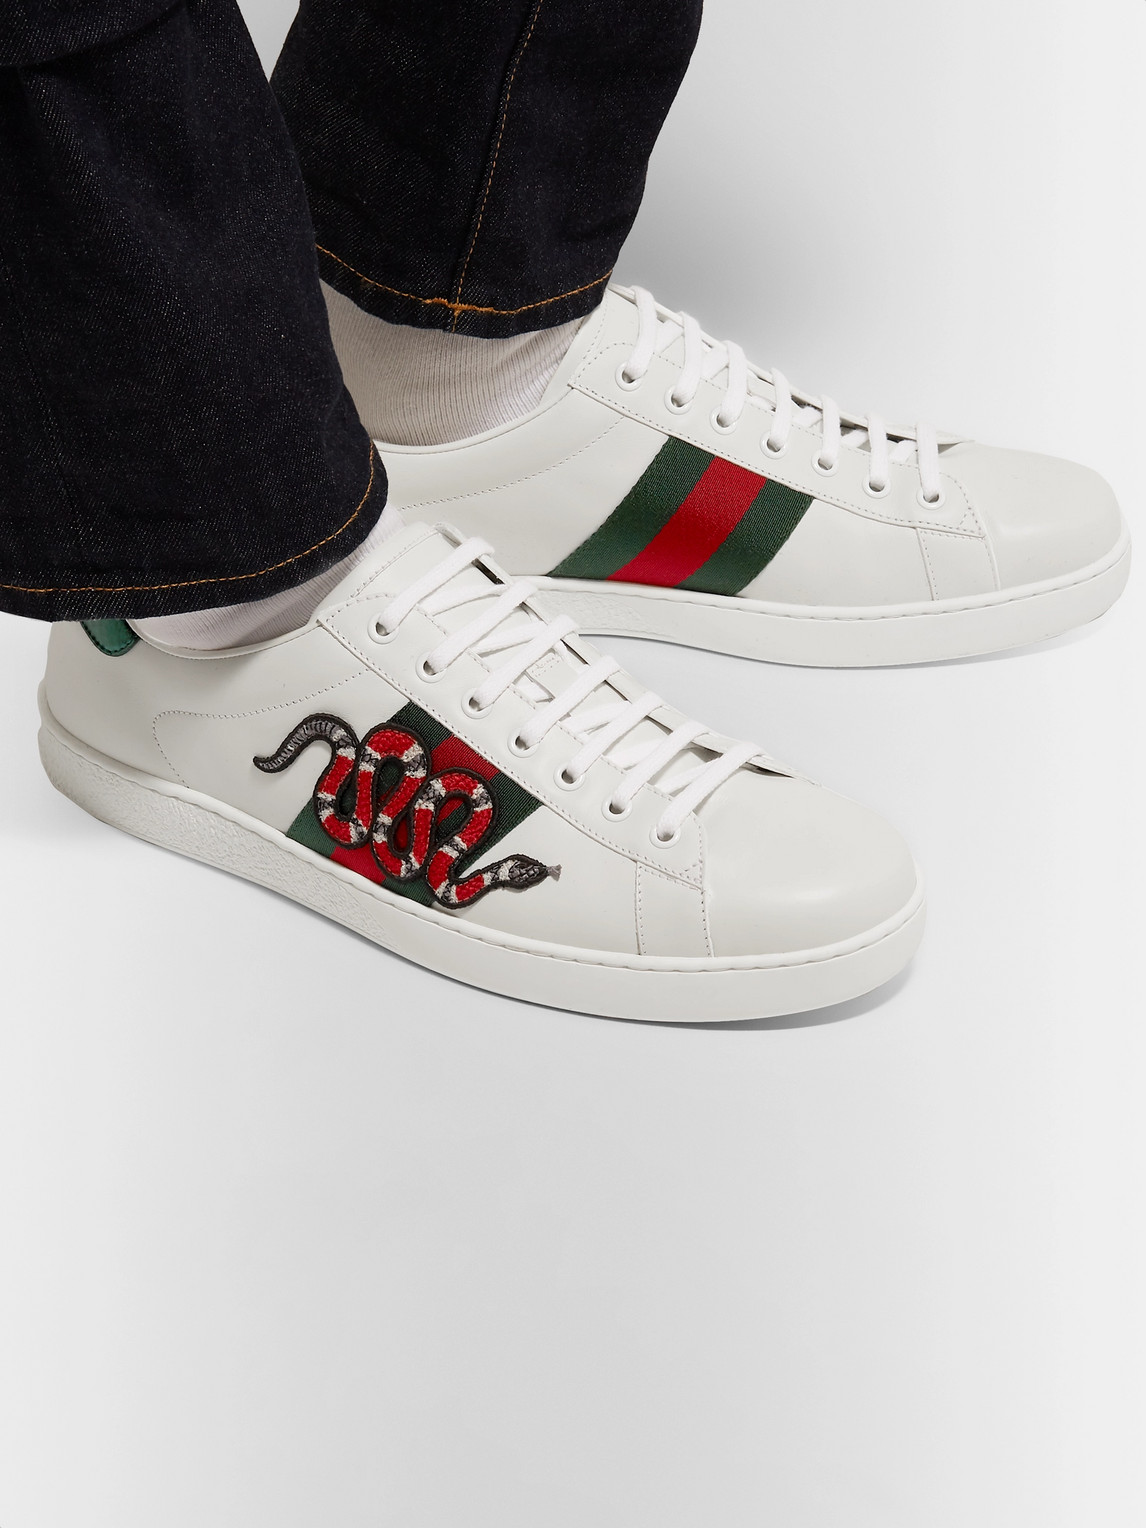 Gucci Sneakers ACE WATERSNAKE-TRIMMED APPLIQUÉD LEATHER SNEAKERS